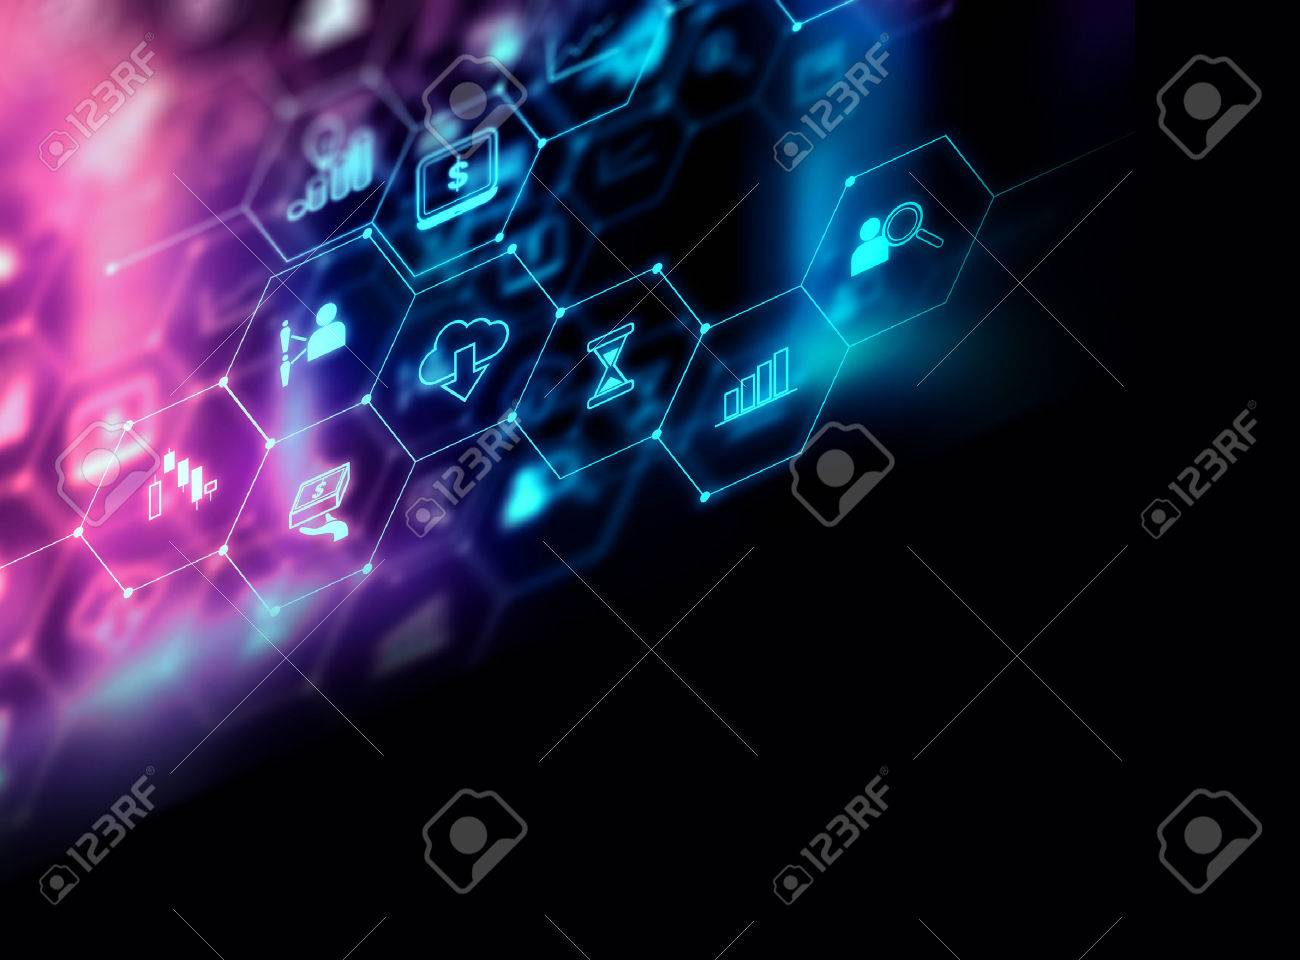 fintech icon on abstract financial technology background represent Blockchain and Fintech Investment Financial Internet Technology Concept. - 80676795